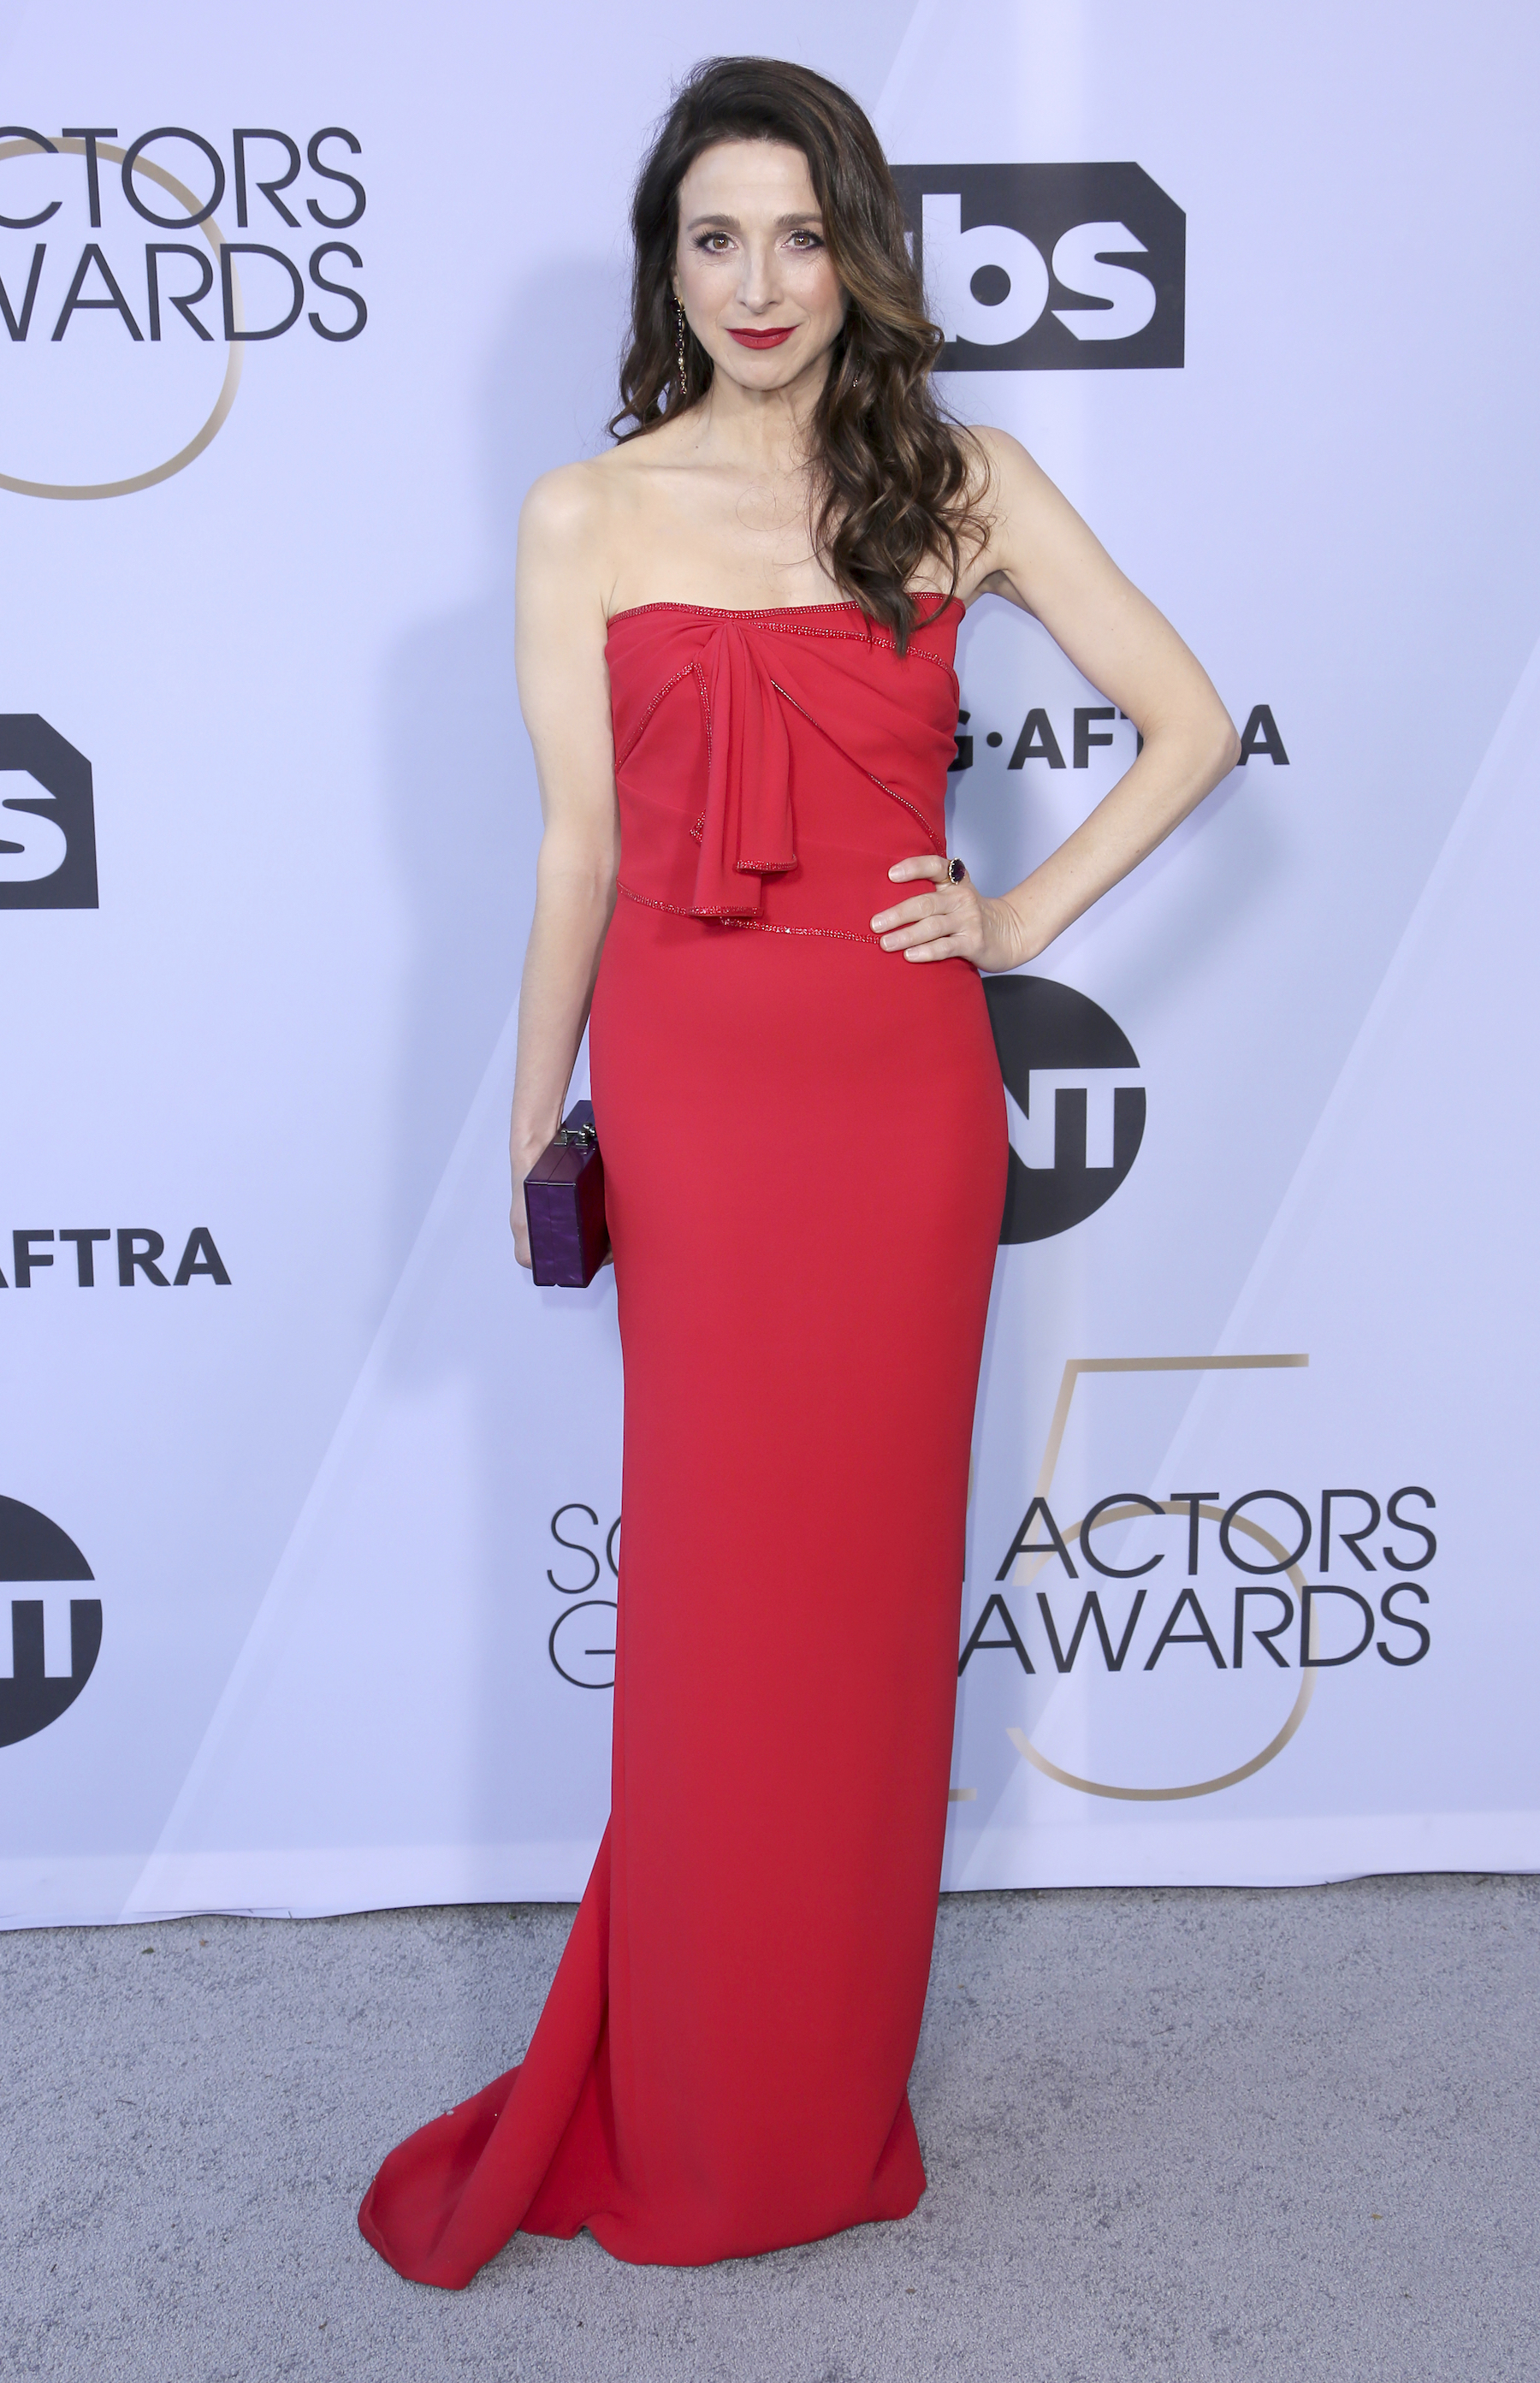 <div class='meta'><div class='origin-logo' data-origin='AP'></div><span class='caption-text' data-credit='Willy Sanjuan/Invision/AP'>Marin Hinkle arrives at the 25th annual Screen Actors Guild Awards at the Shrine Auditorium & Expo Hall on Sunday, Jan. 27, 2019, in Los Angeles.</span></div>